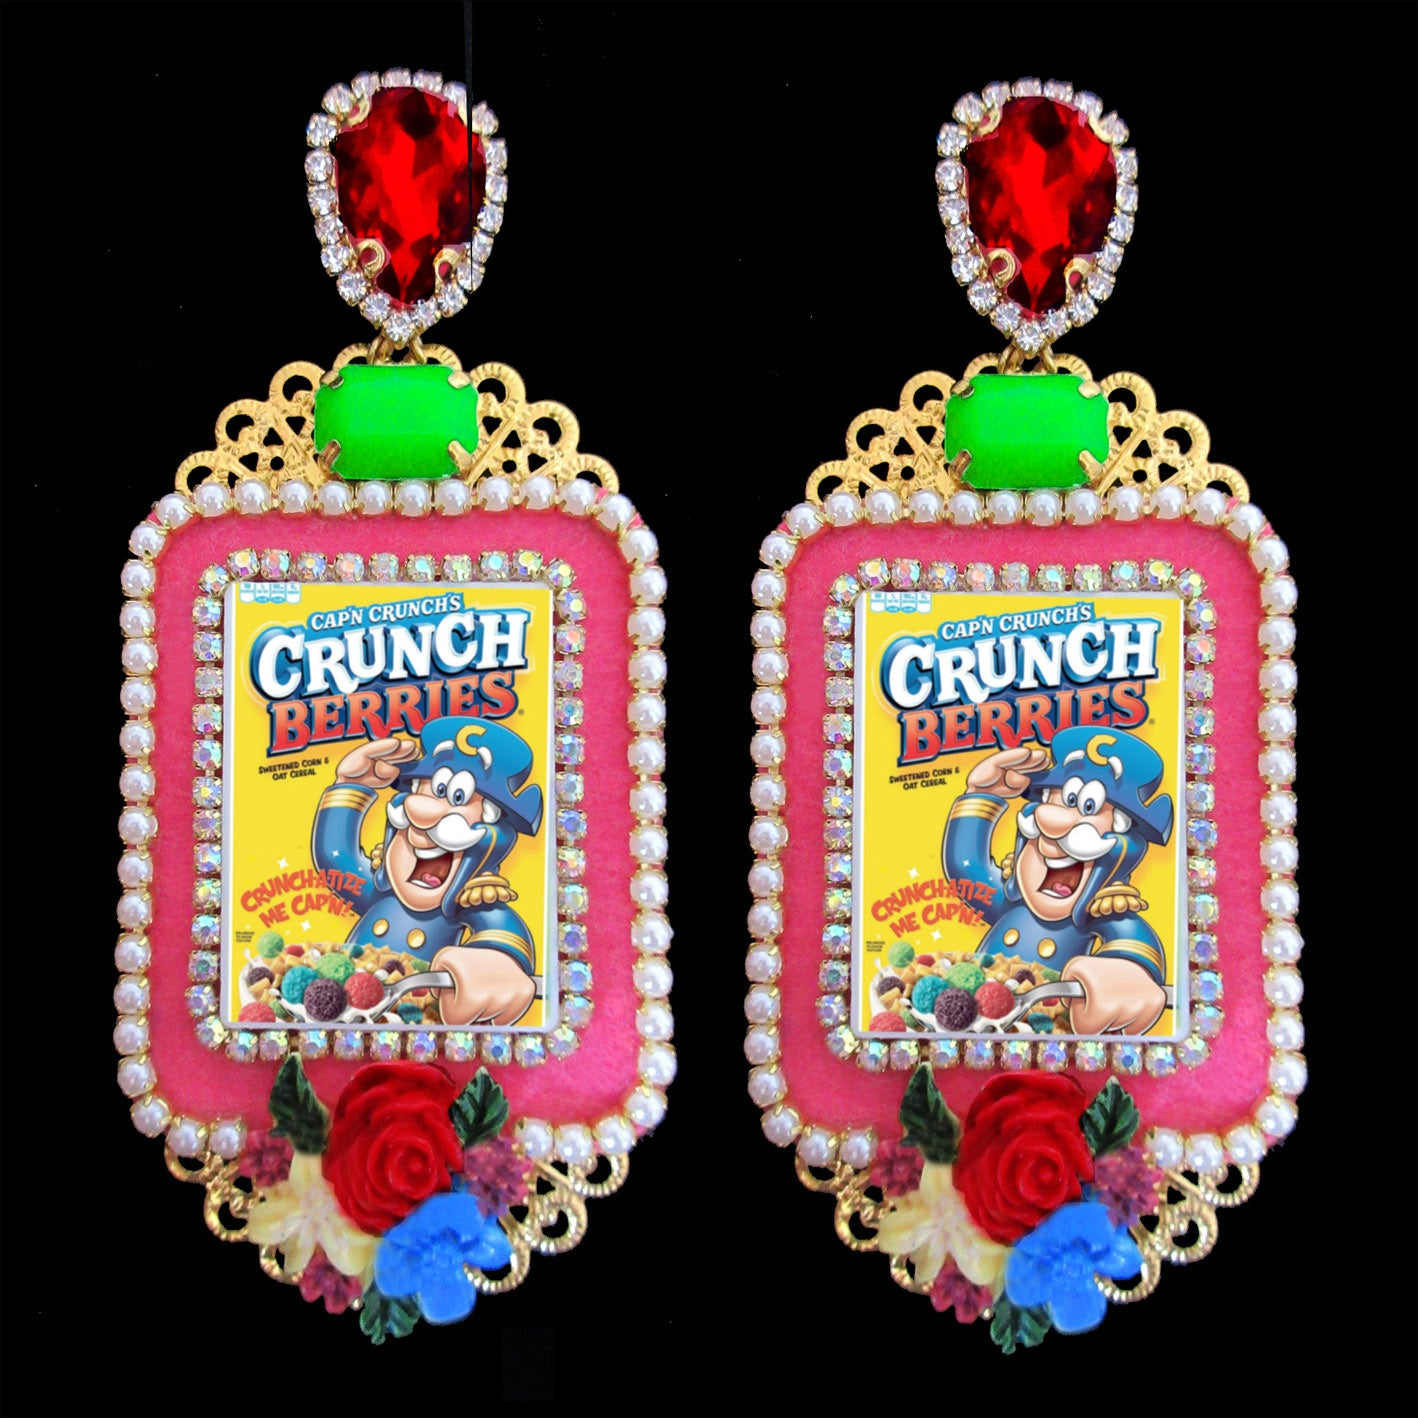 mouchkine jewelry pop culture chic and trendy 80's earrings, made in france.